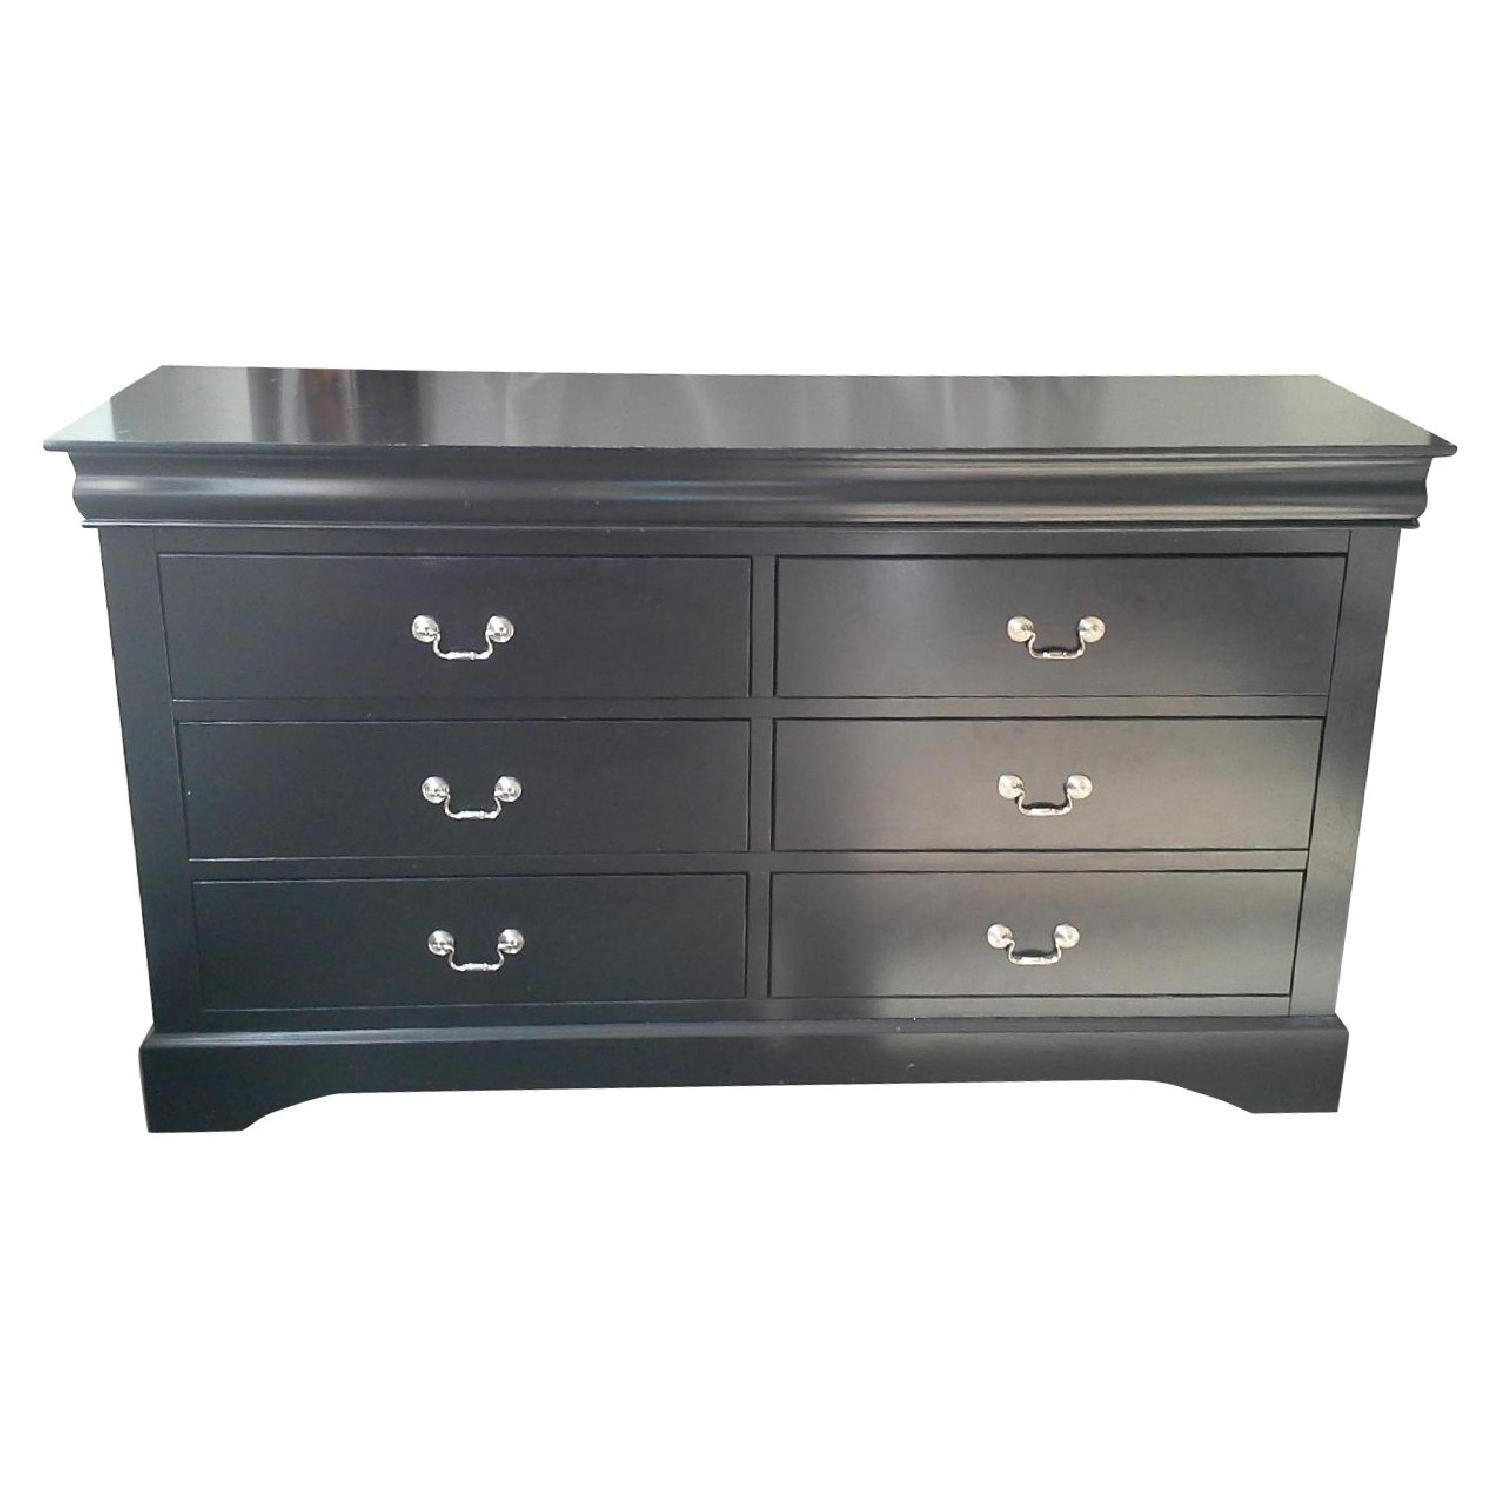 Black 6 Drawer Dresser